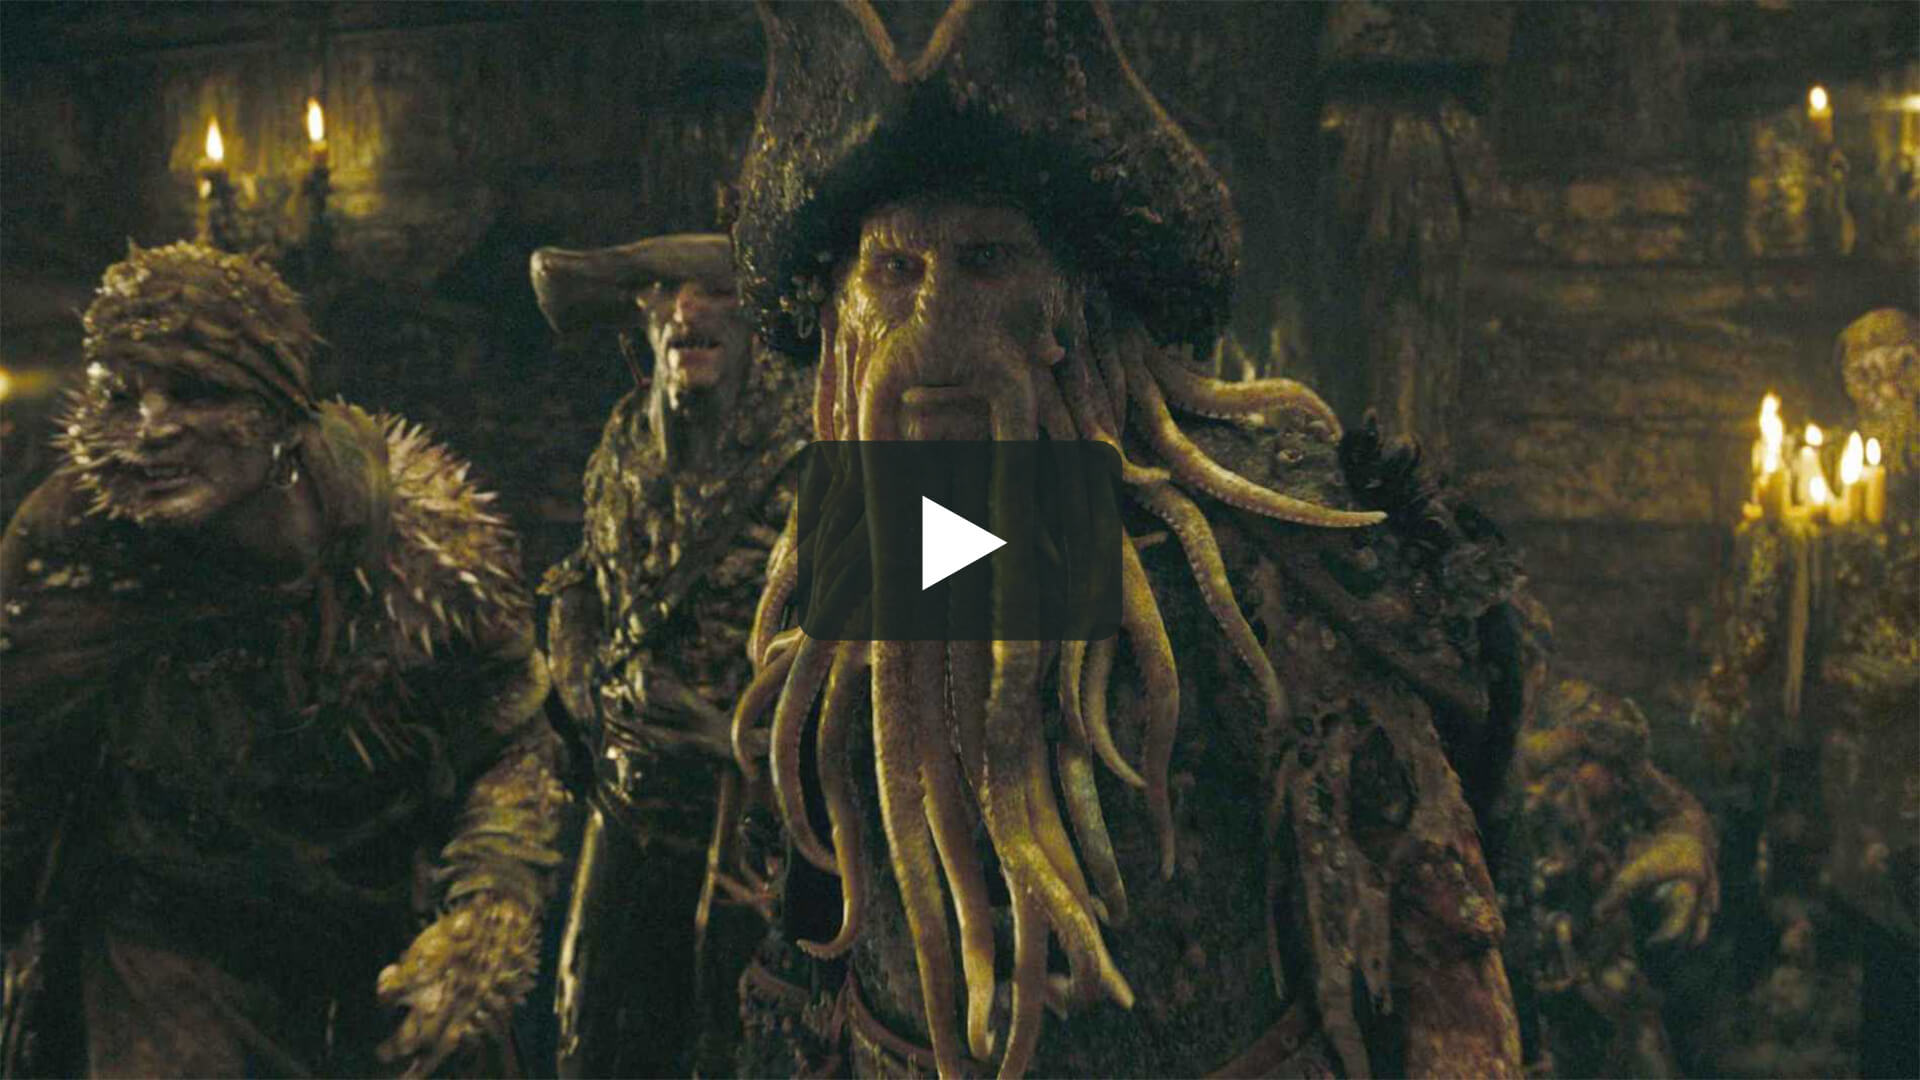 Pirates of the Caribbean: At World's End - 加勒比海盜3:世界的盡頭